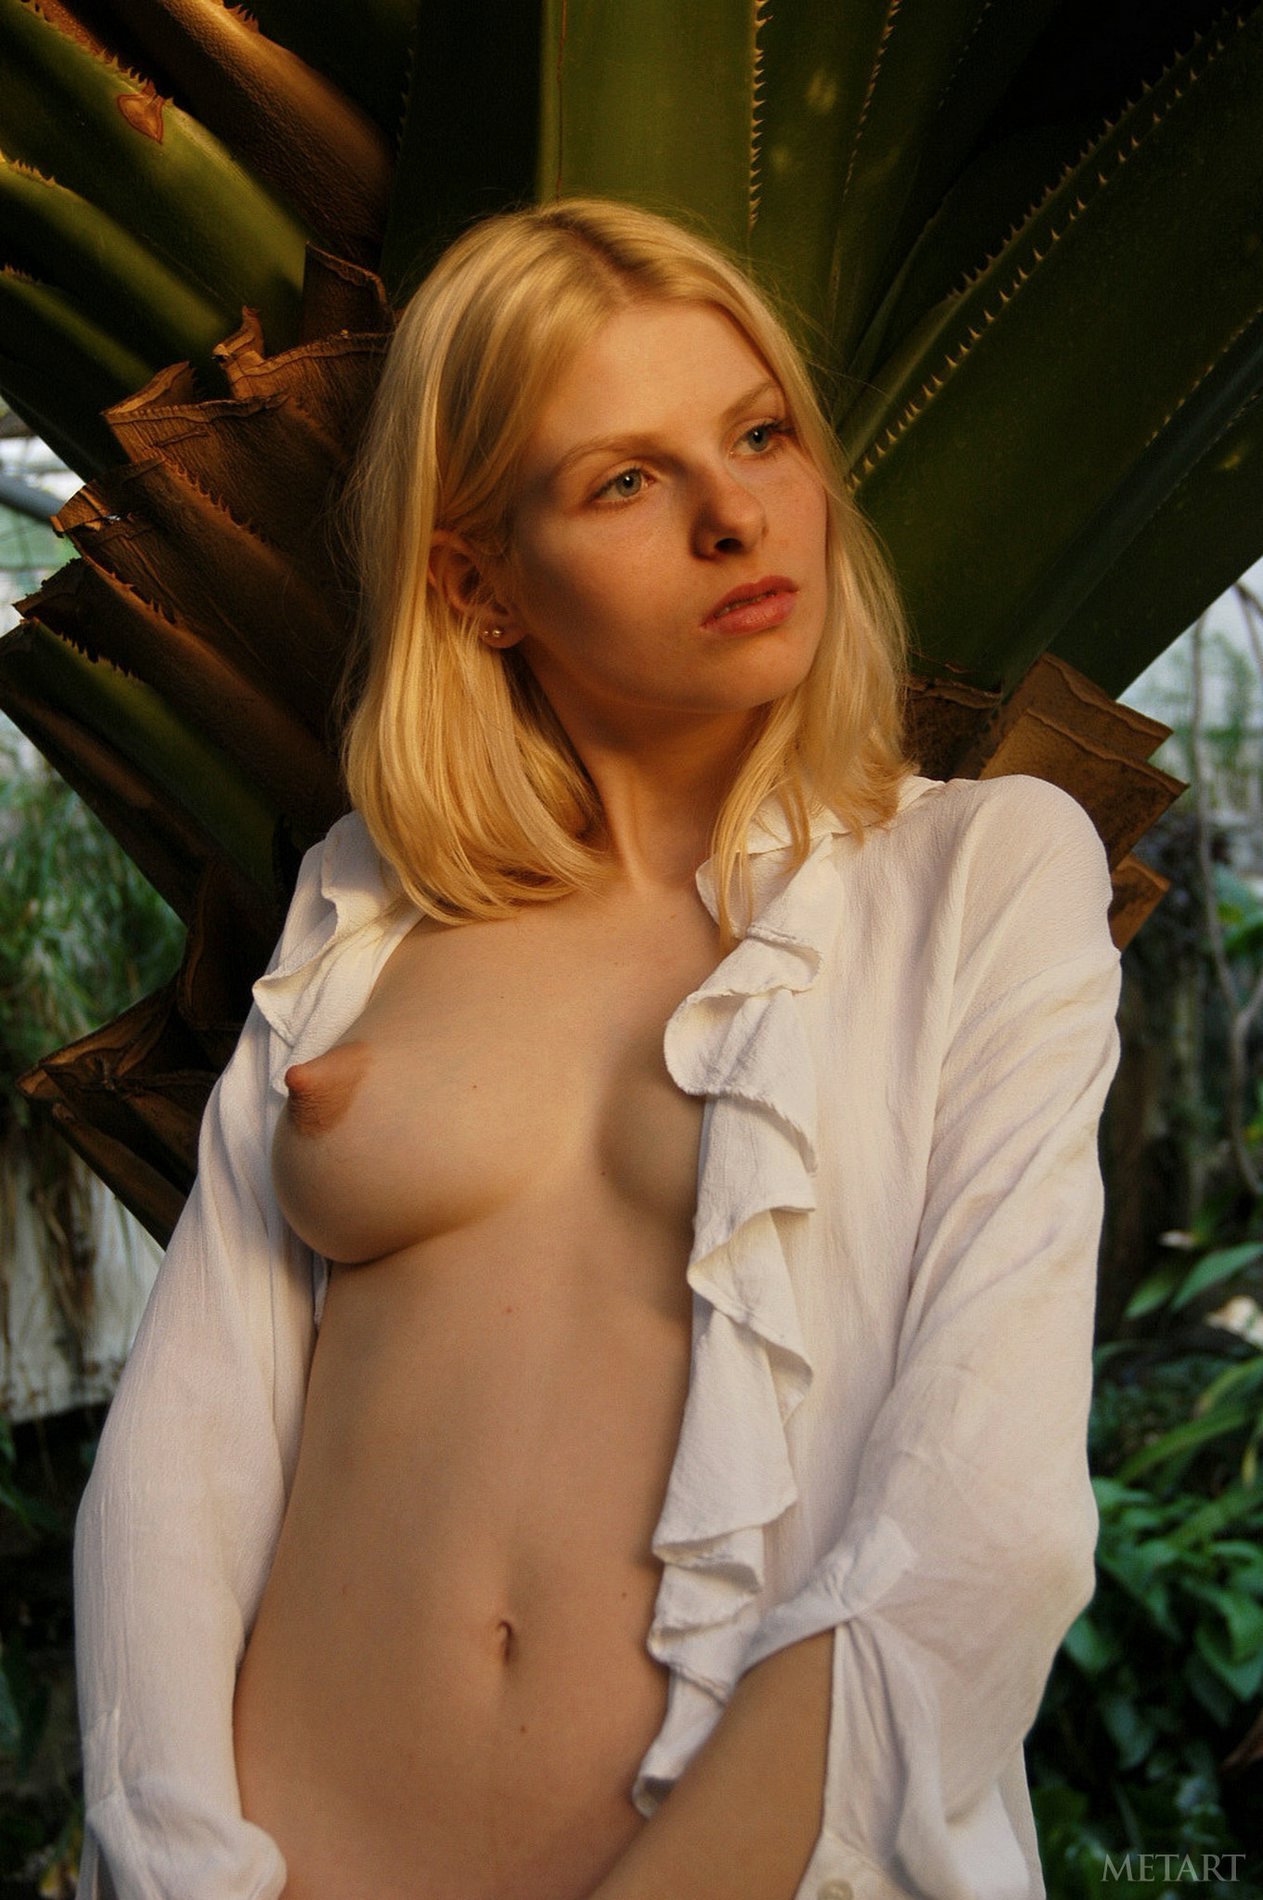 Young Blonde Wiska Poses For The Camera - My Pornstar Book-4135